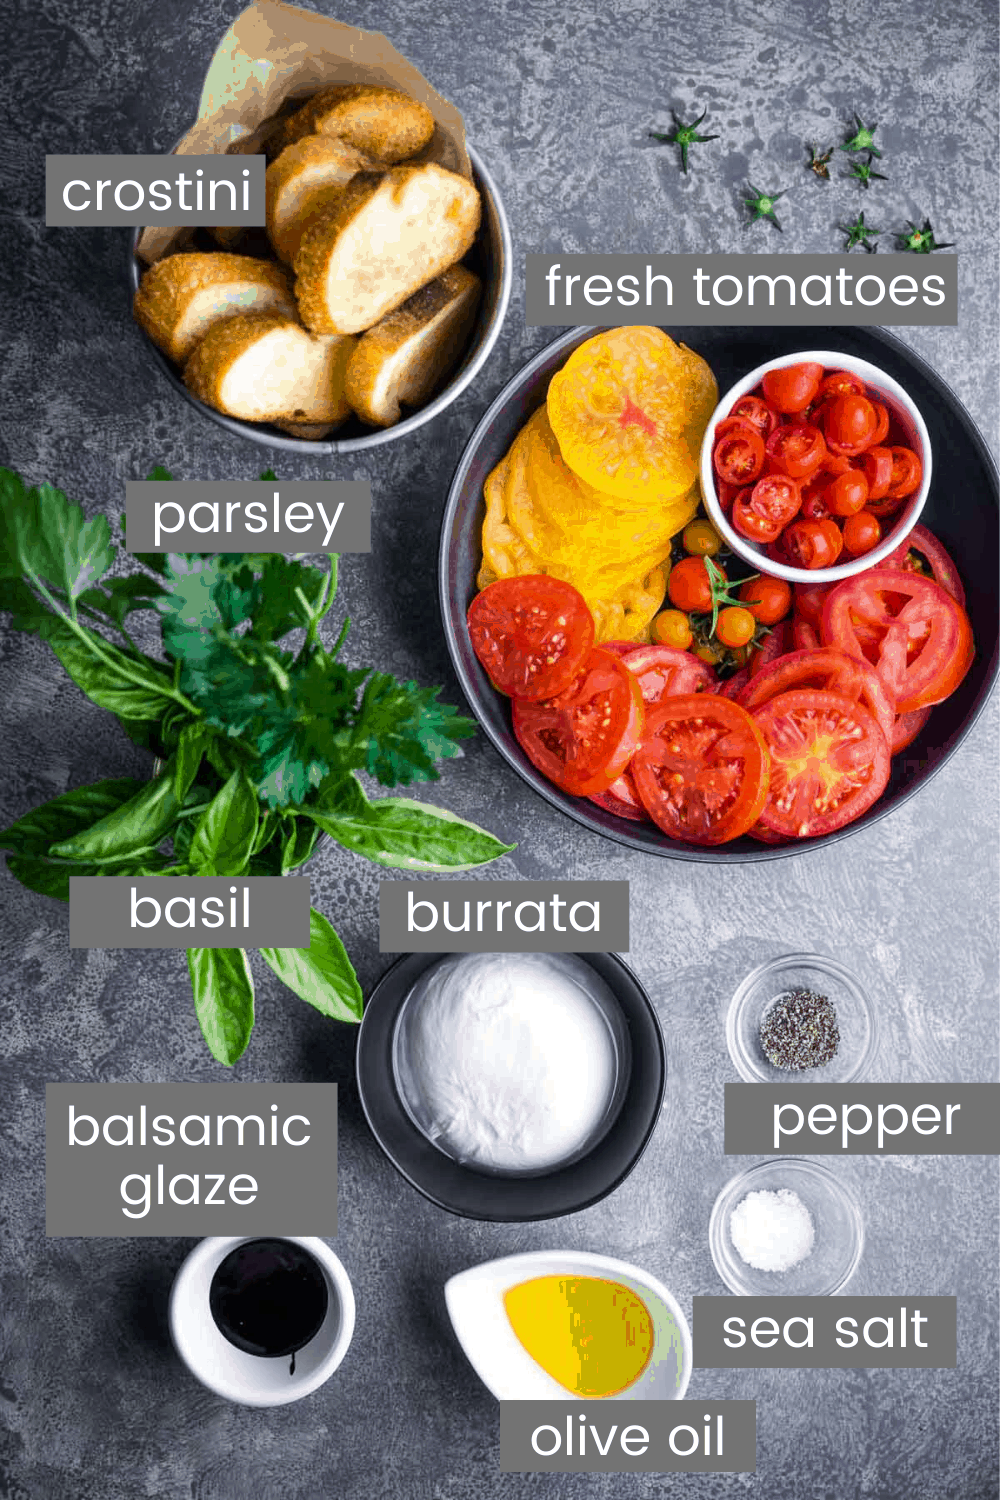 burrata recipe ingredients in individual bowls with text overlay